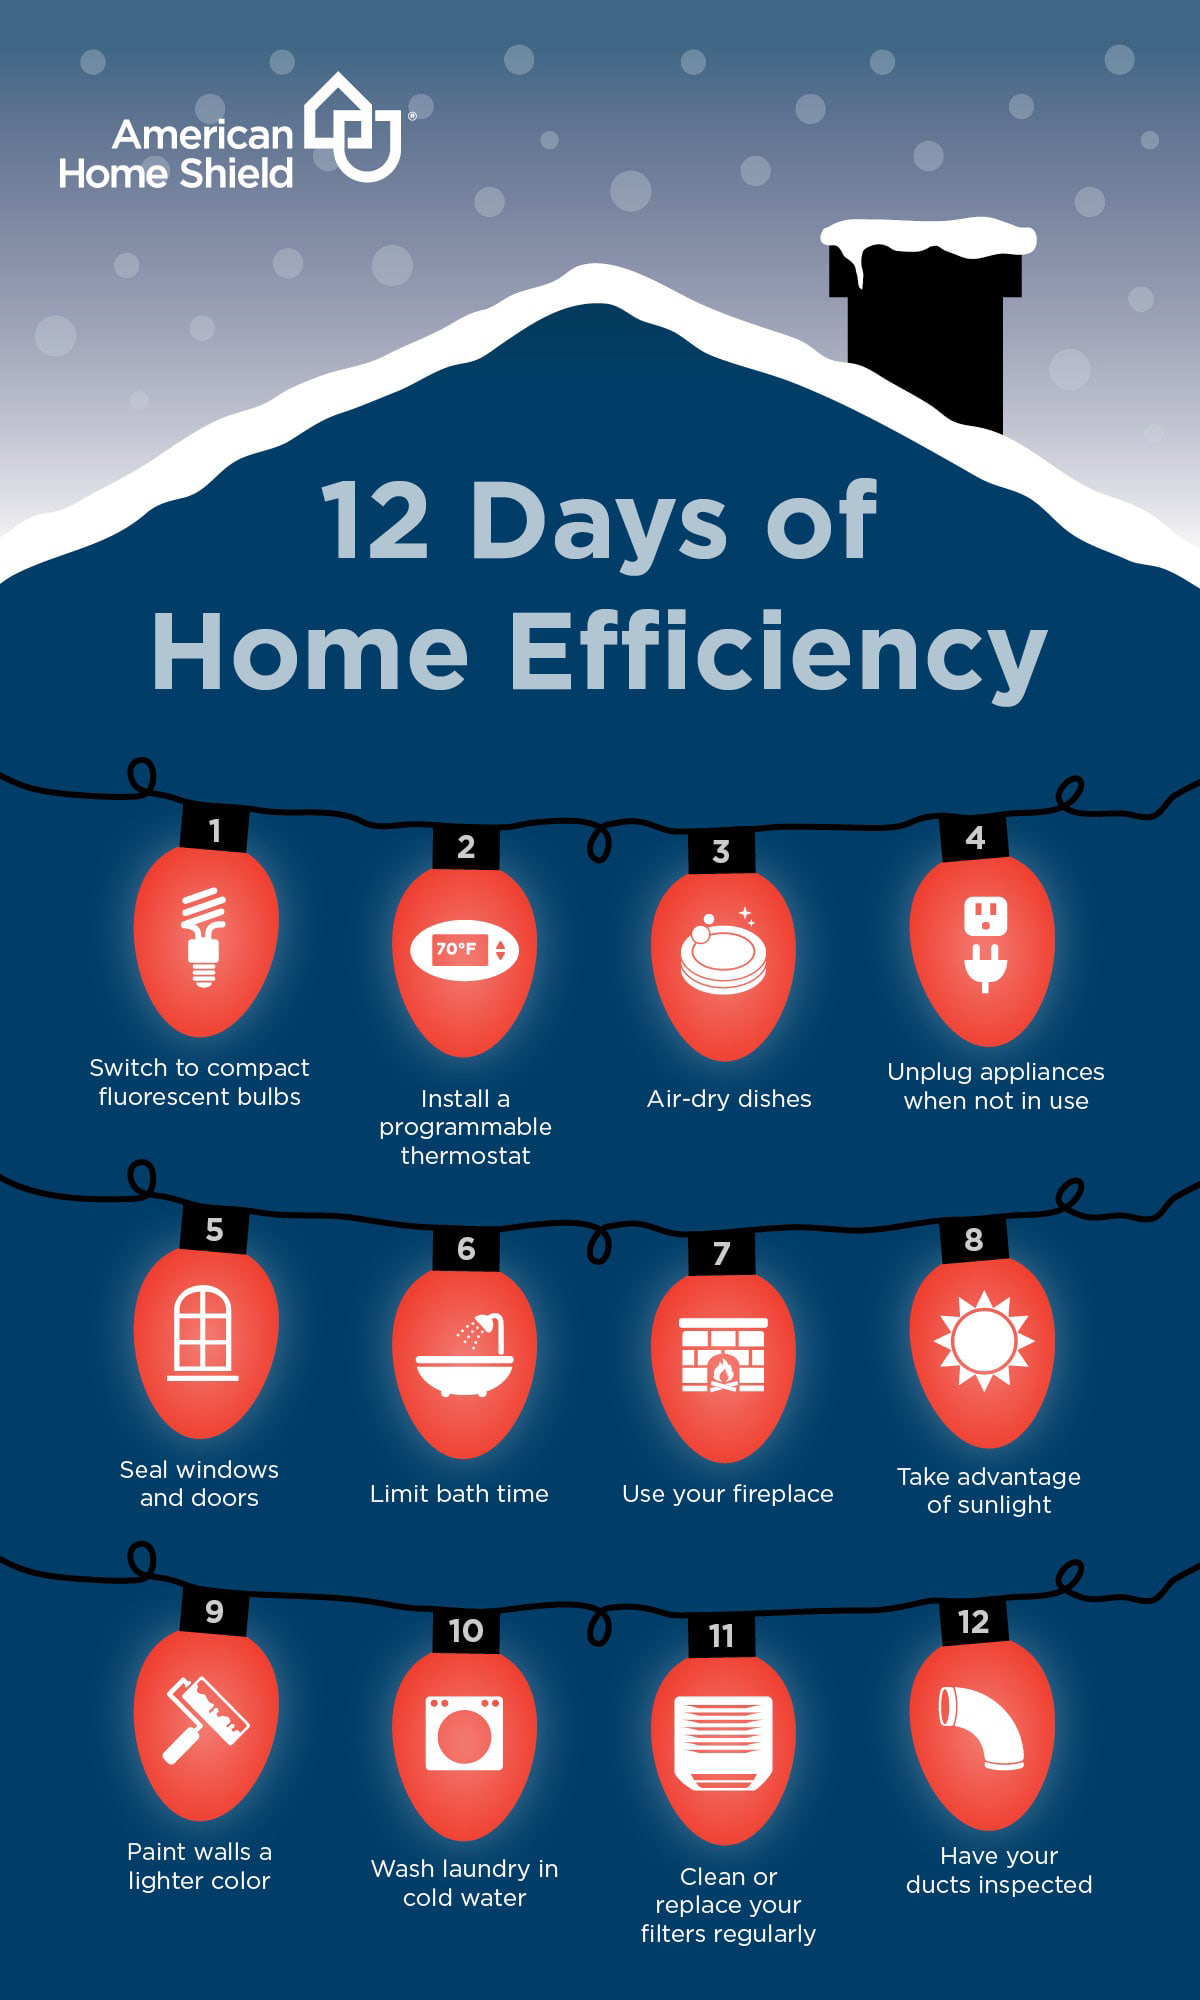 Energy efficient tips for holidays